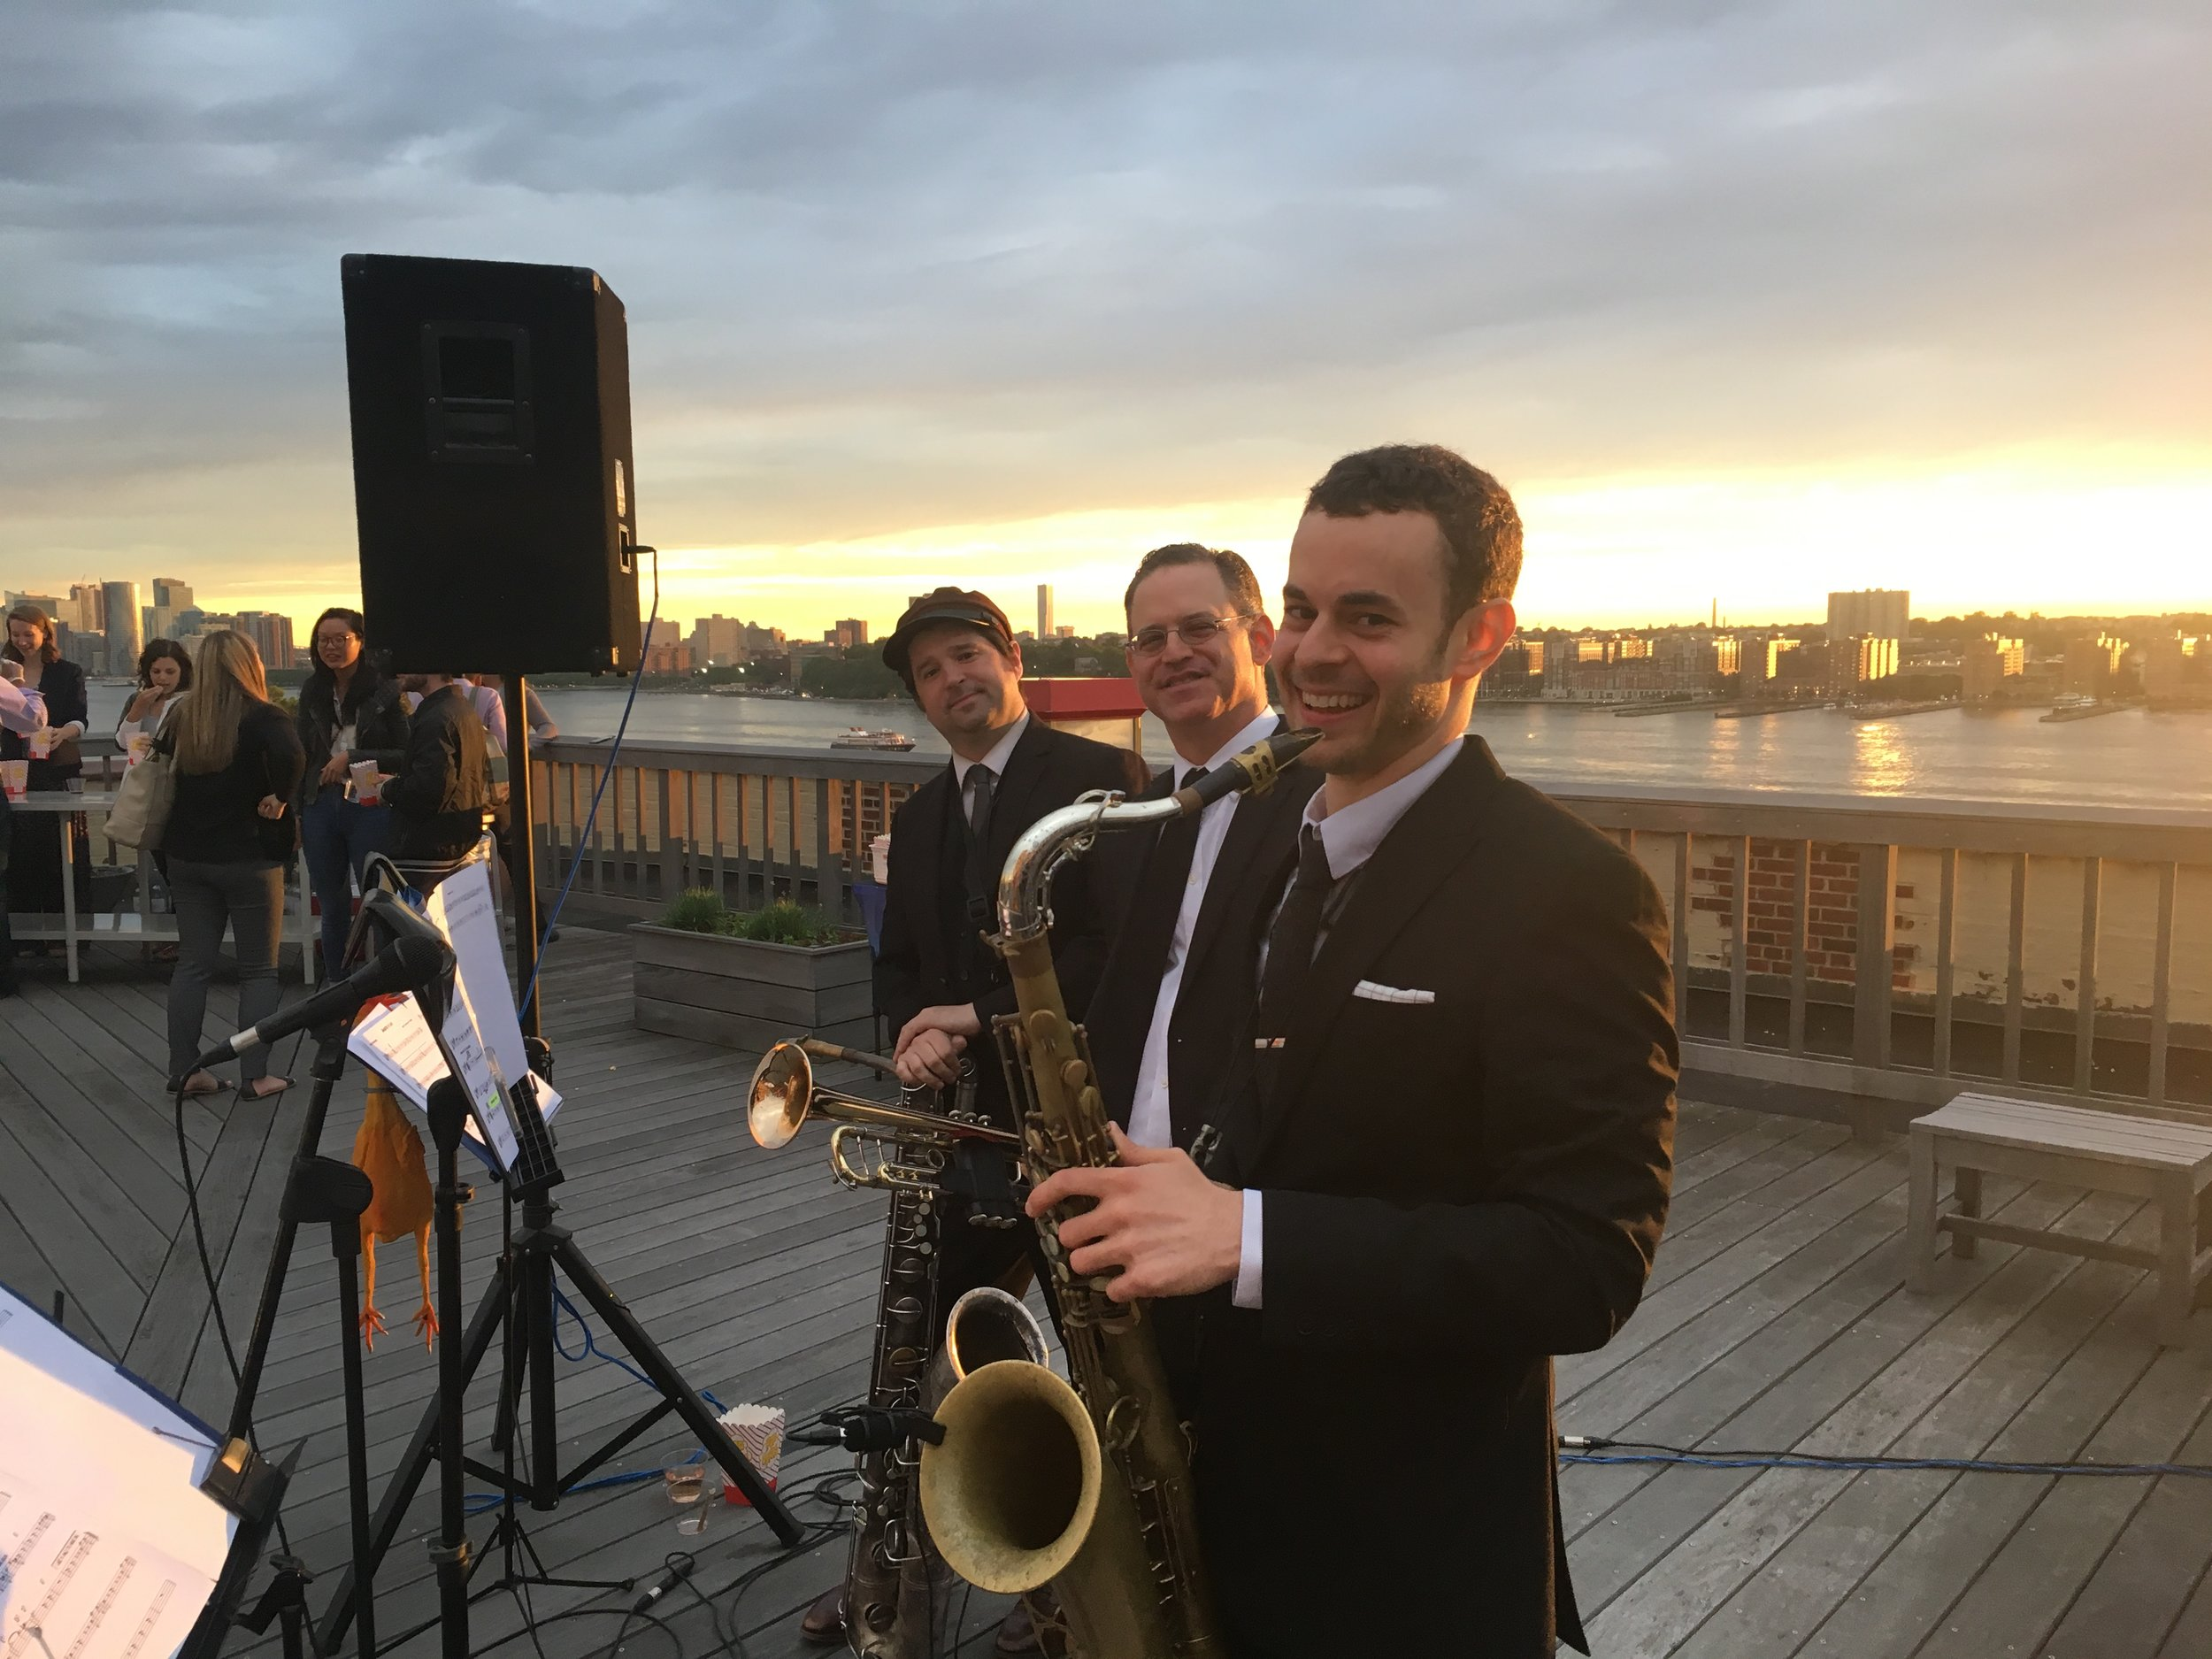 Peter & the Master Keys playing on the rooftop of the Starret Lehigh building